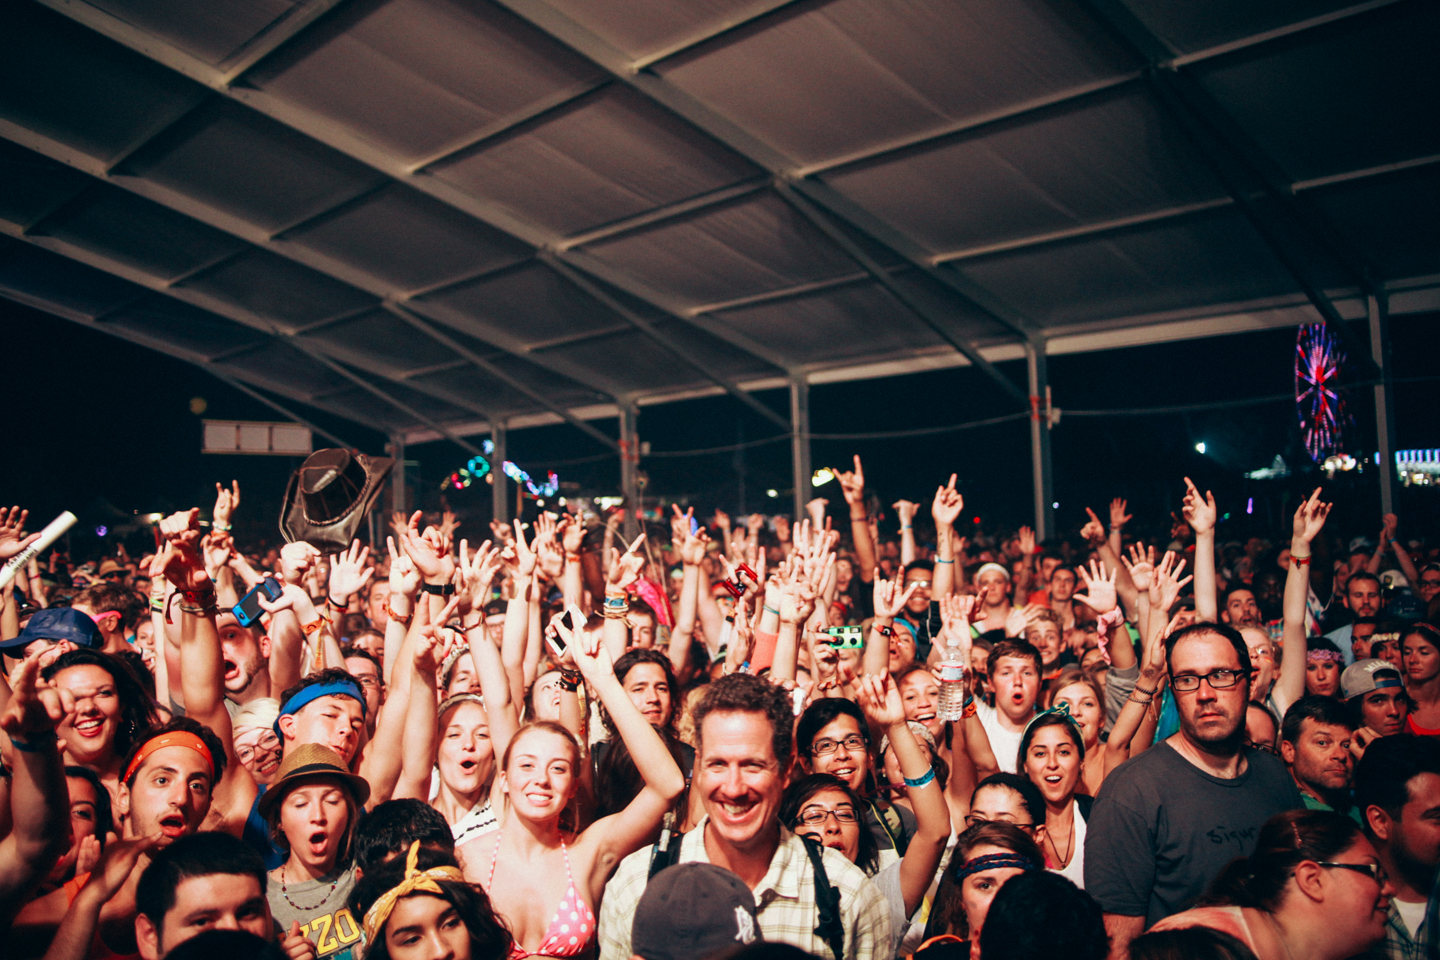 Nick-Johnson_Mr-Aesthetic_Photography_Bonnaroo-26.jpg